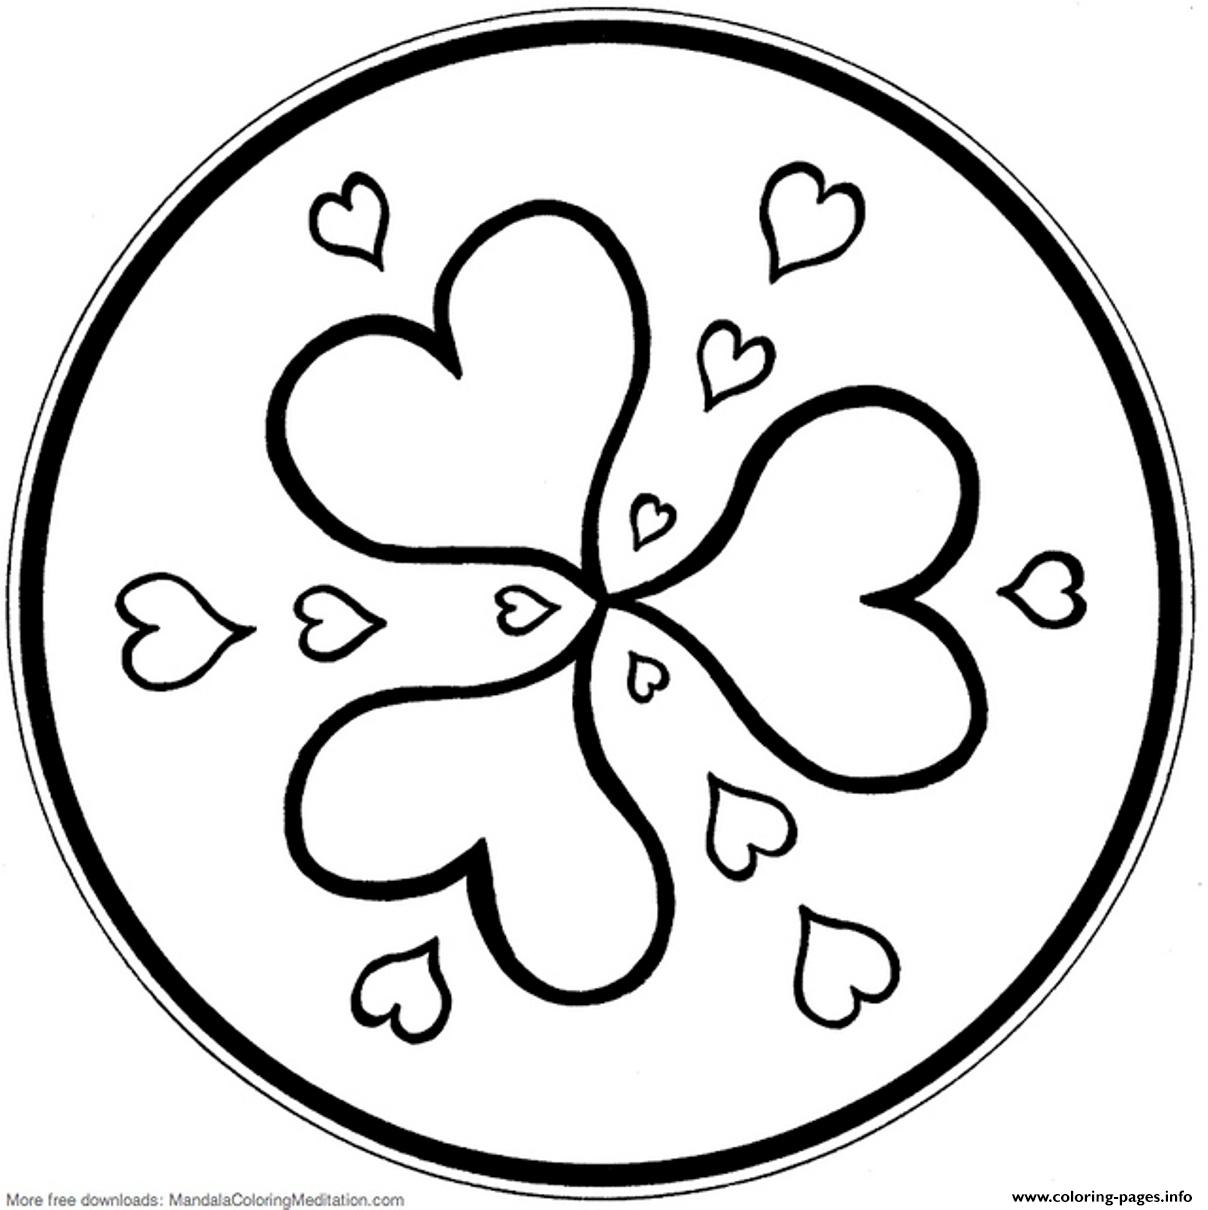 Mandala S Hearts9eca coloring pages